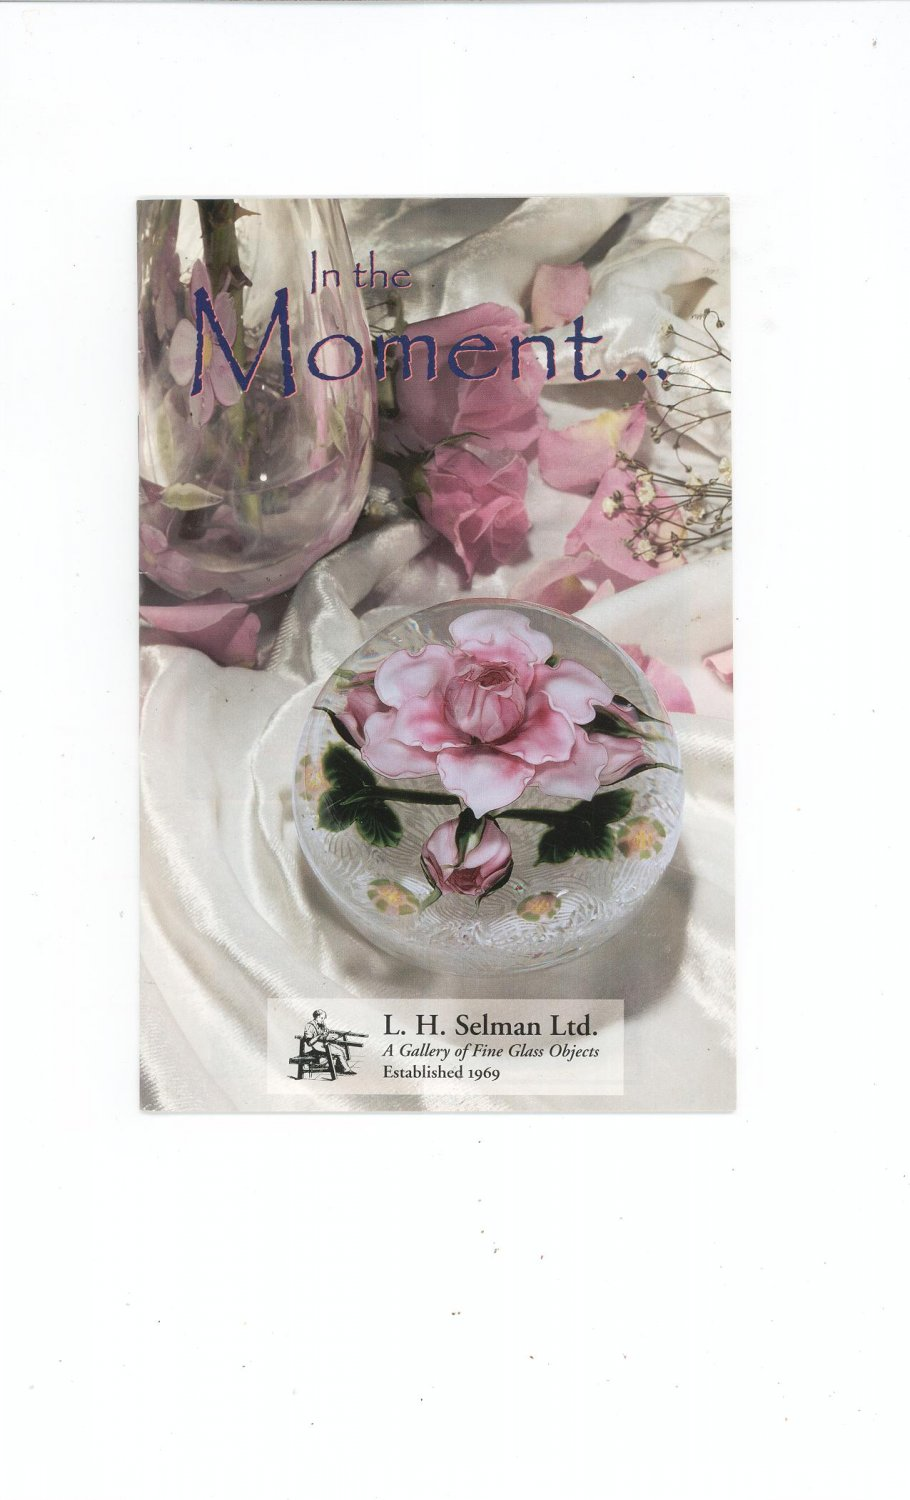 In The Moment  Catalog / Brochure by L. H. Selman Ltd. Paperweights